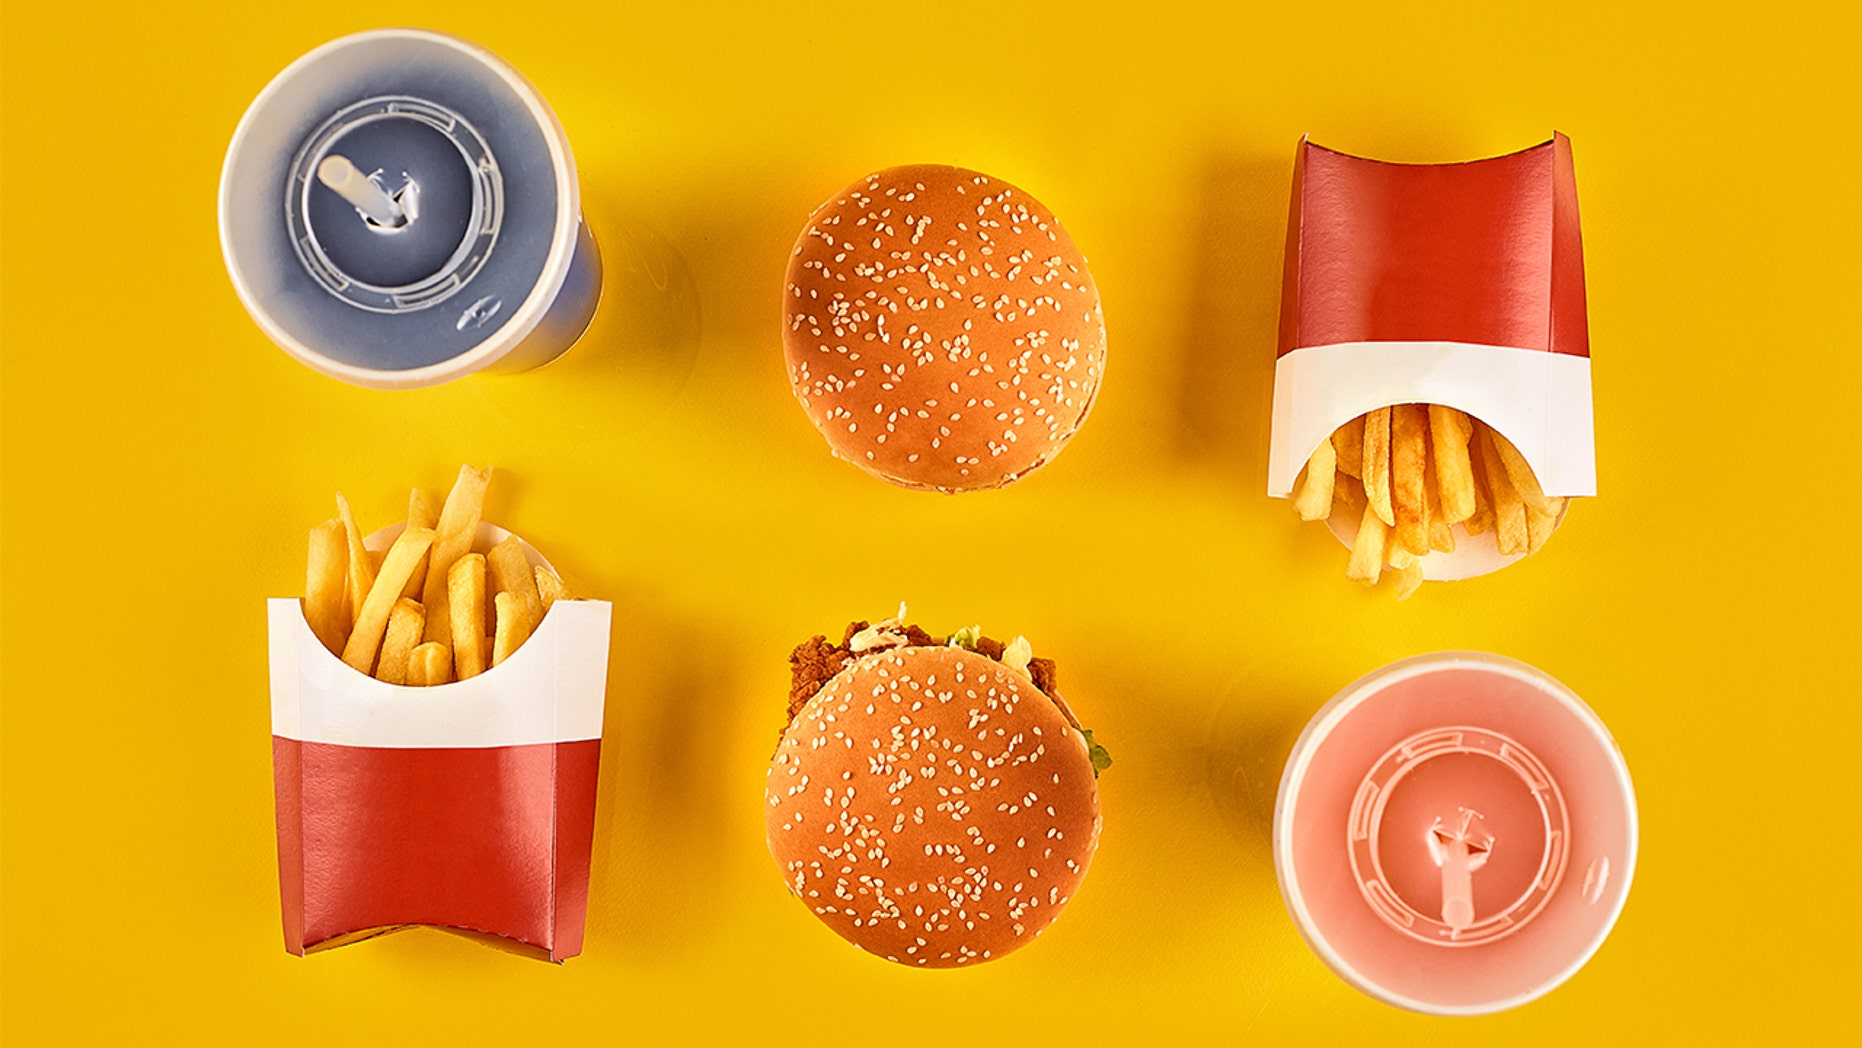 Parents in Missouri are angry after the school board banned fast food during school hours.